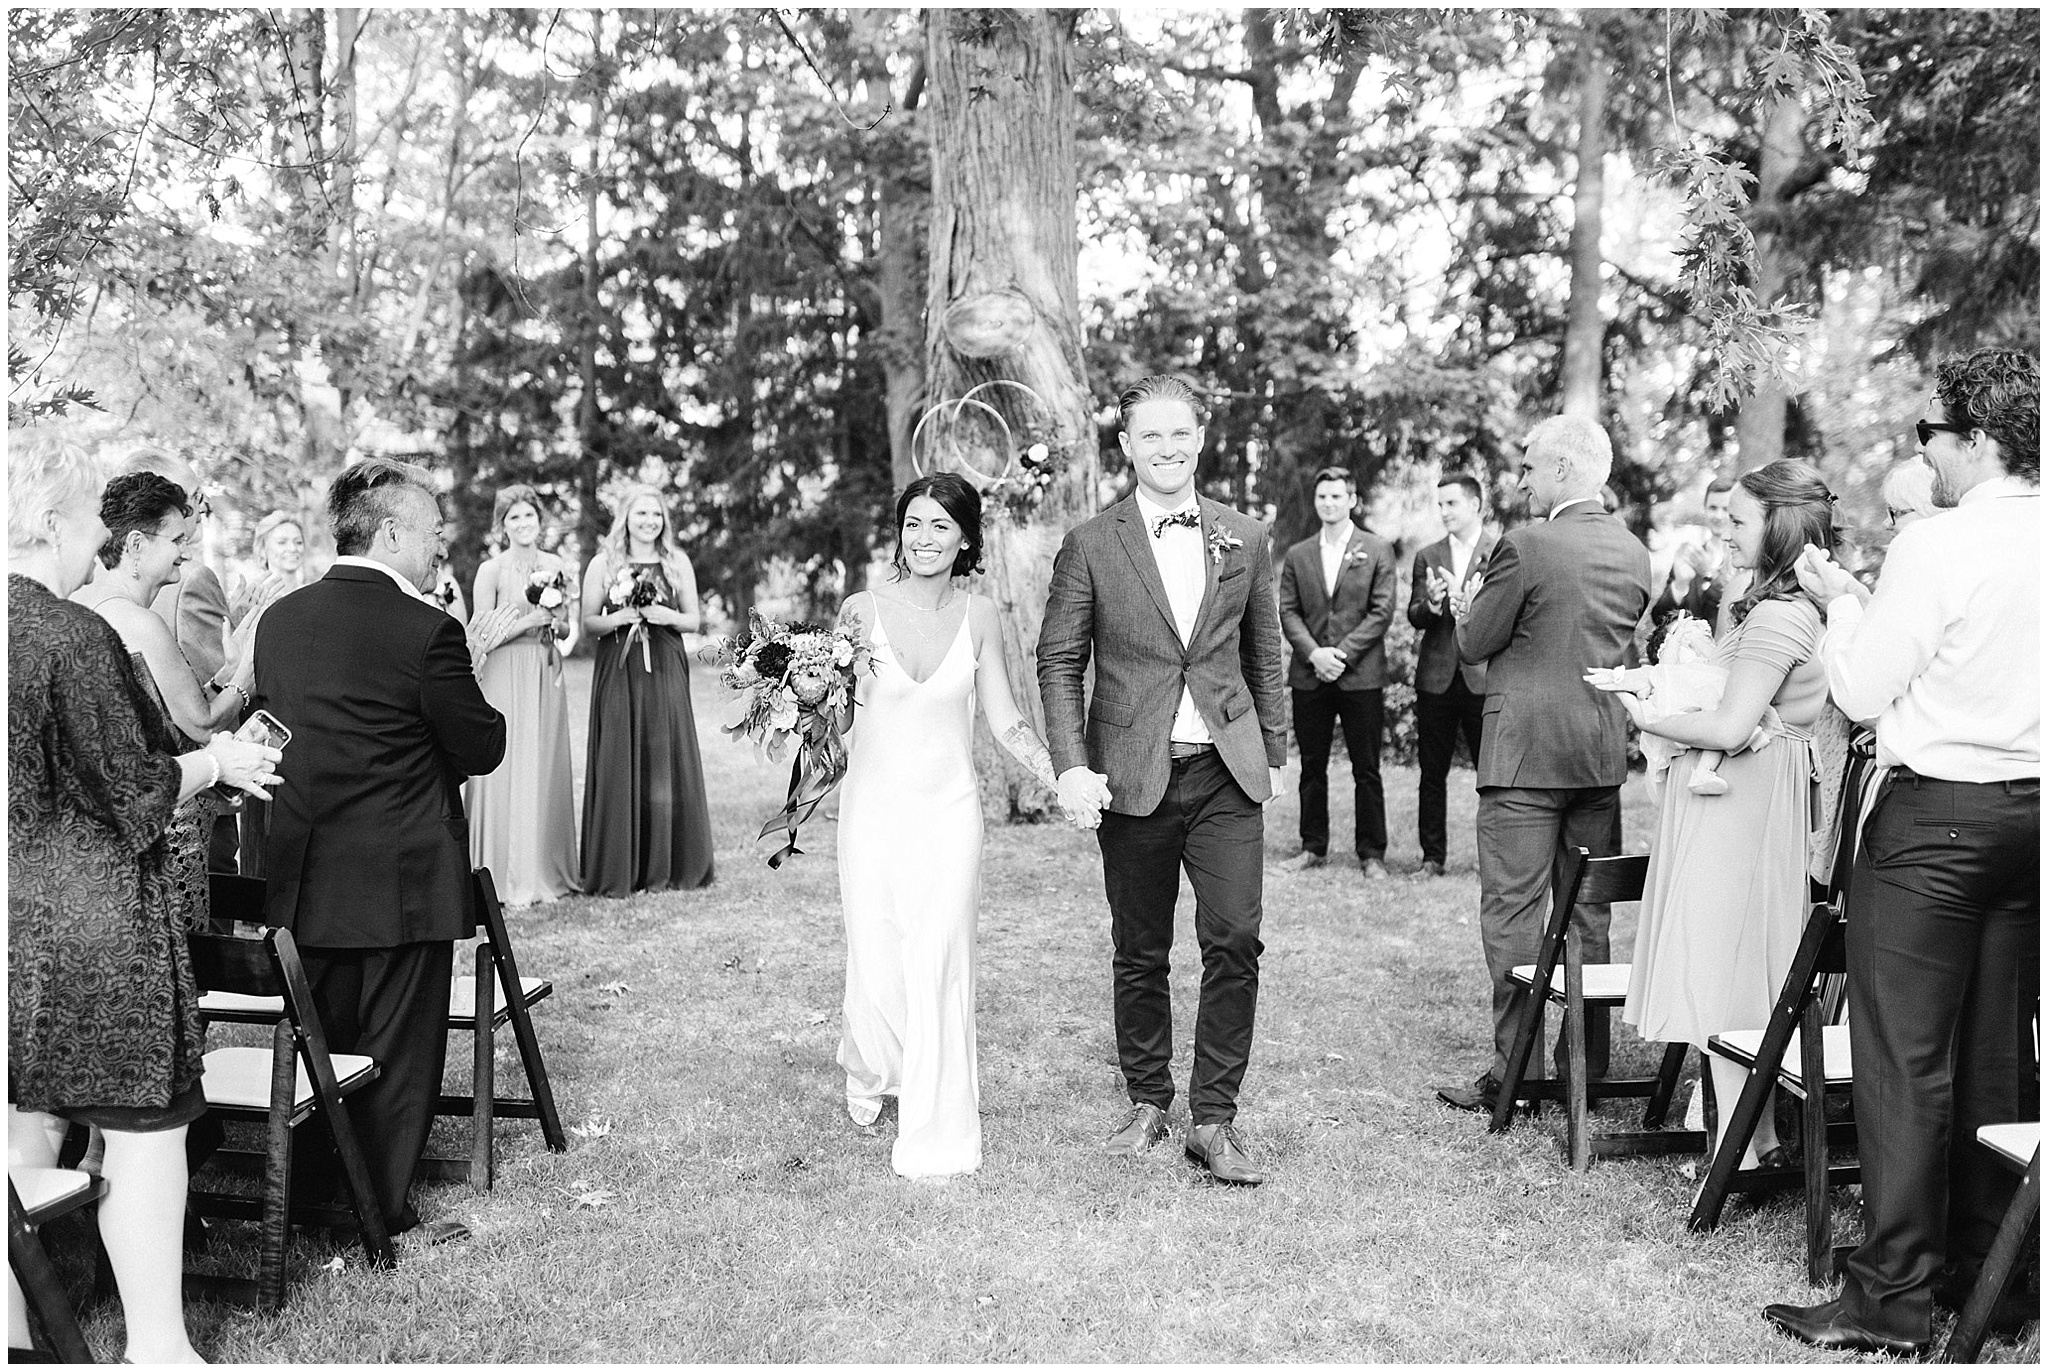 Outdoor ceremony at Victoria Park Pavilion in Kitchener, Ontario by Jenn Kavanagh Photography